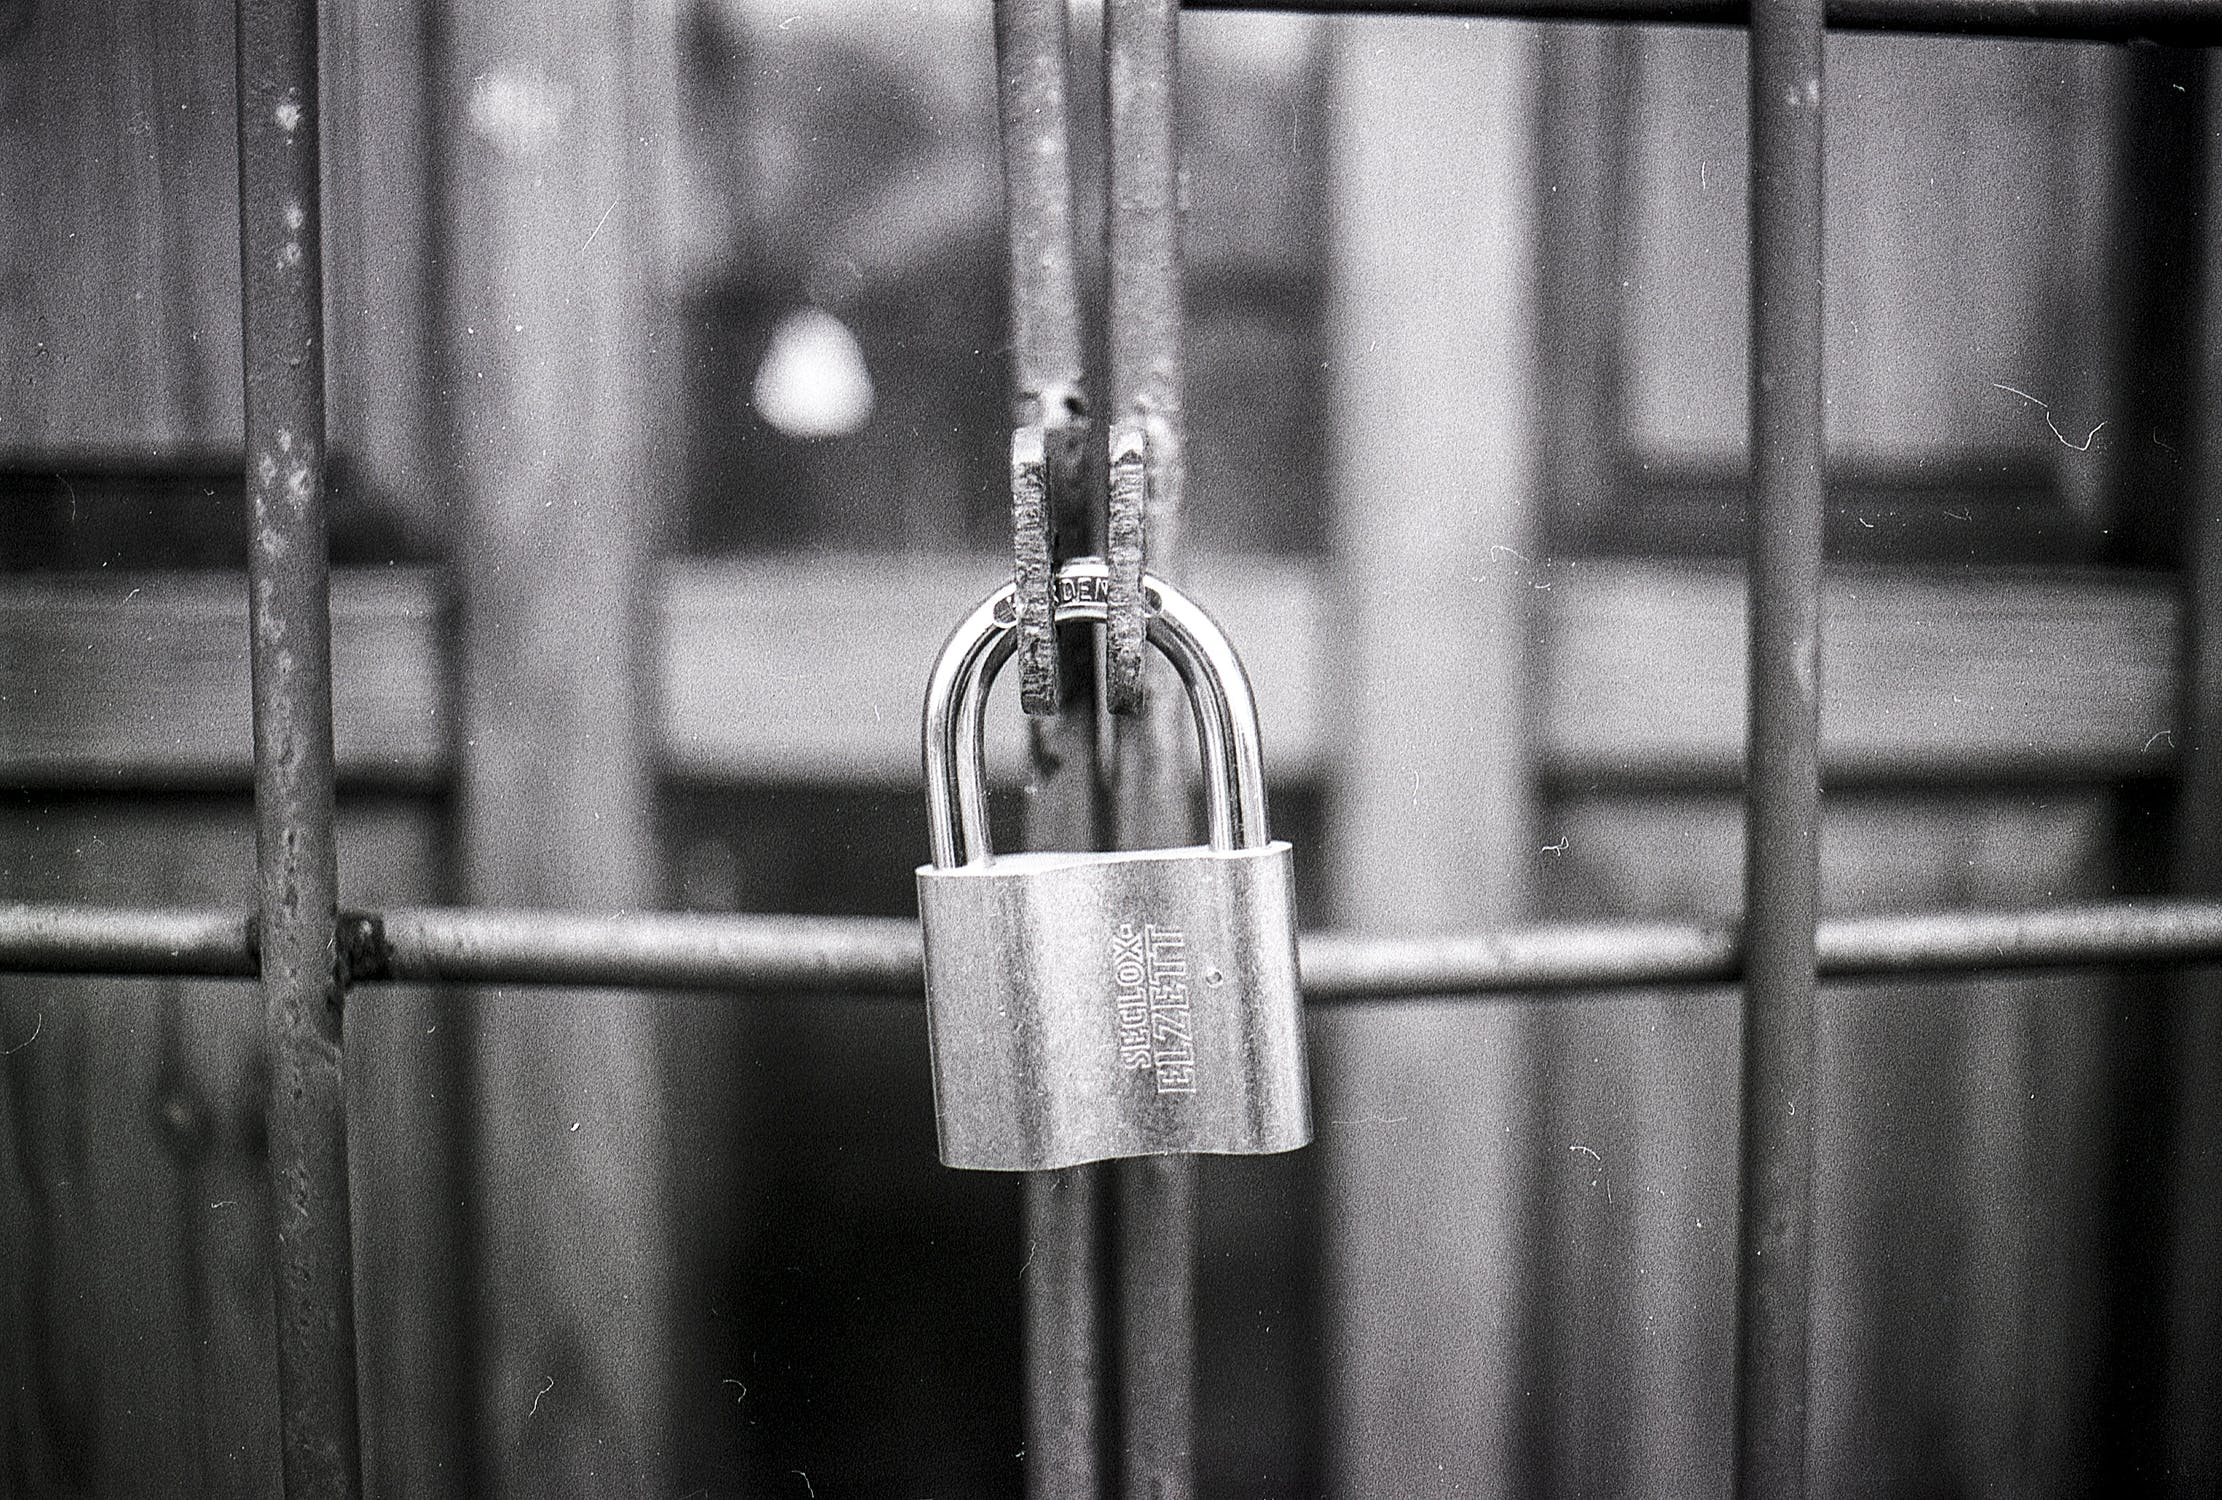 A padlock - International car shipping services need to be both reliable and safe